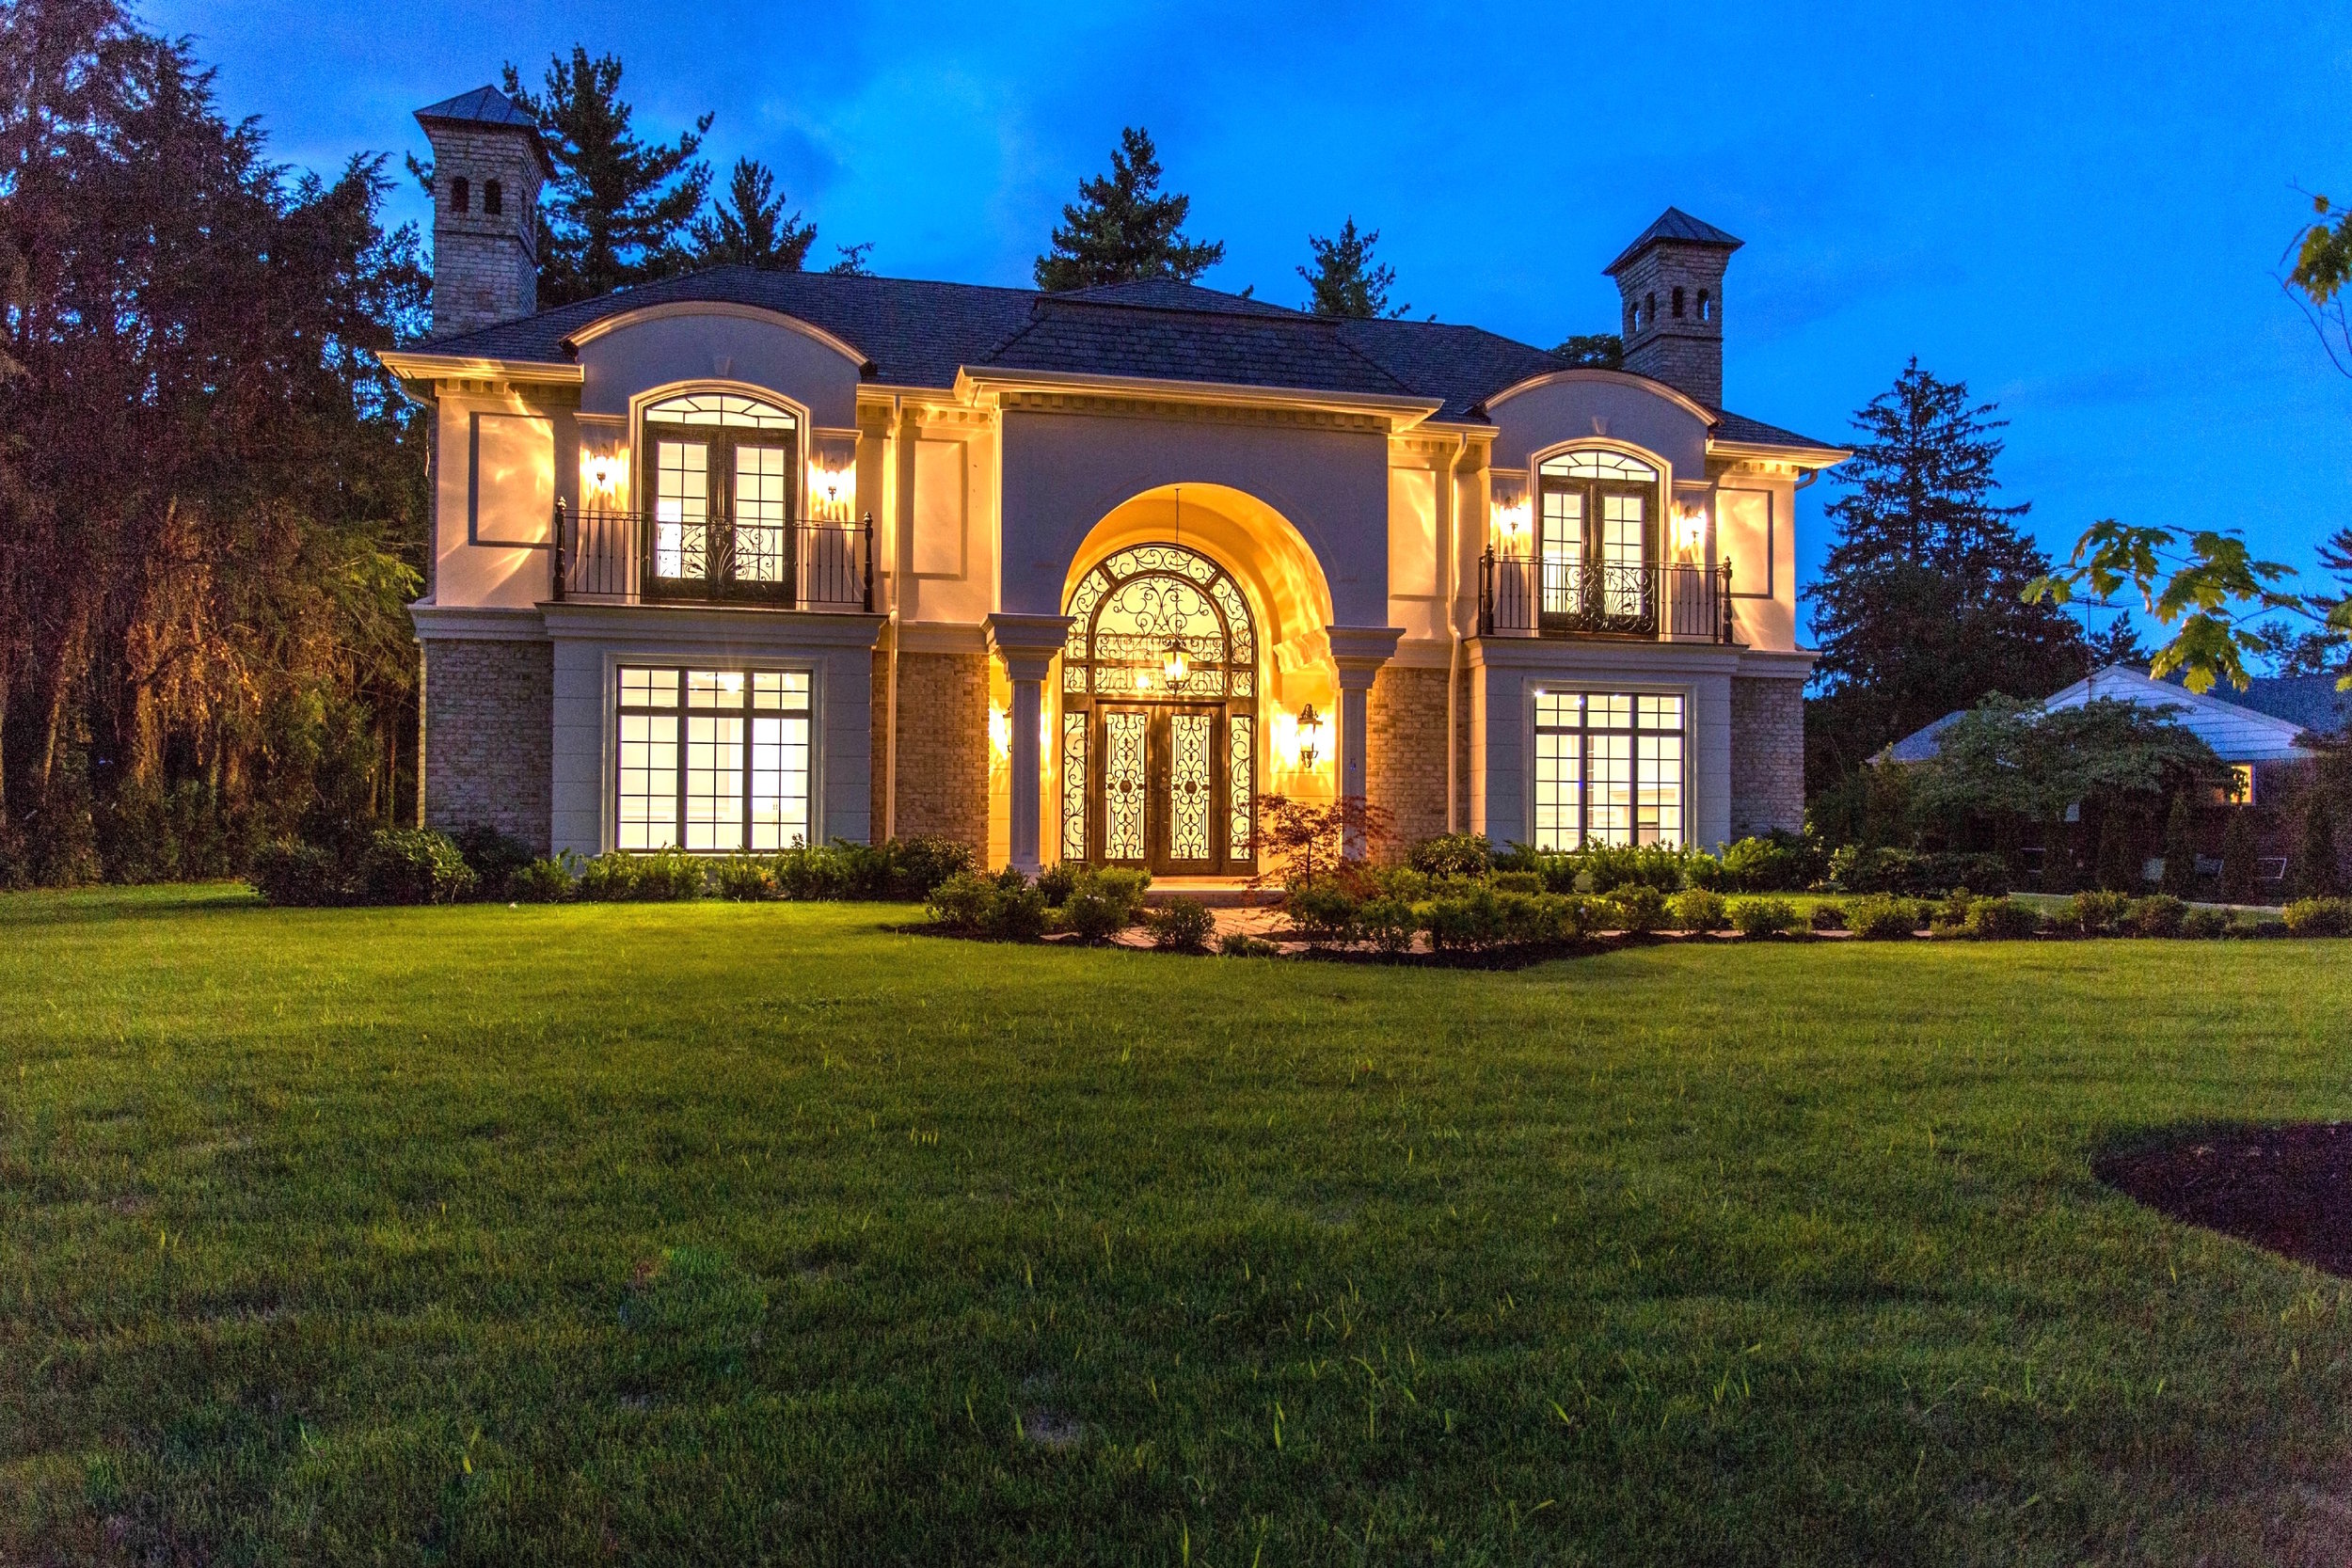 $3.85M | GREAT NECK, NY